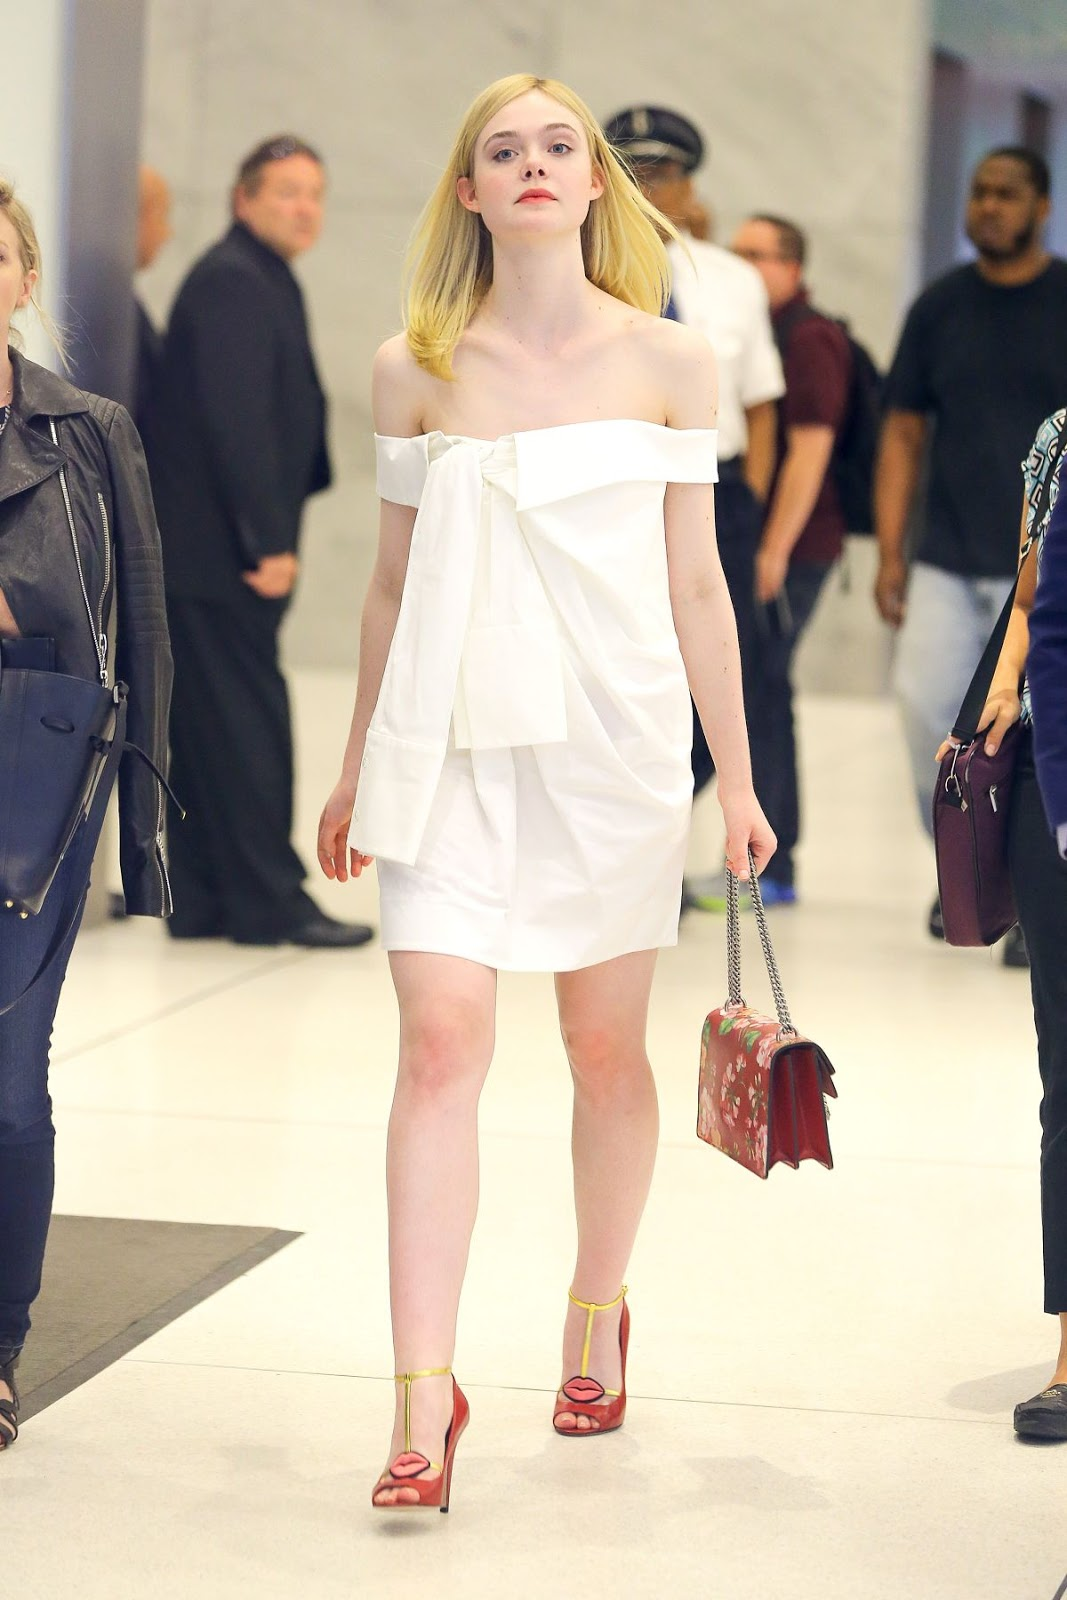 HQ Photos of Elle Fanning At The Neon Demon Premiere In New York